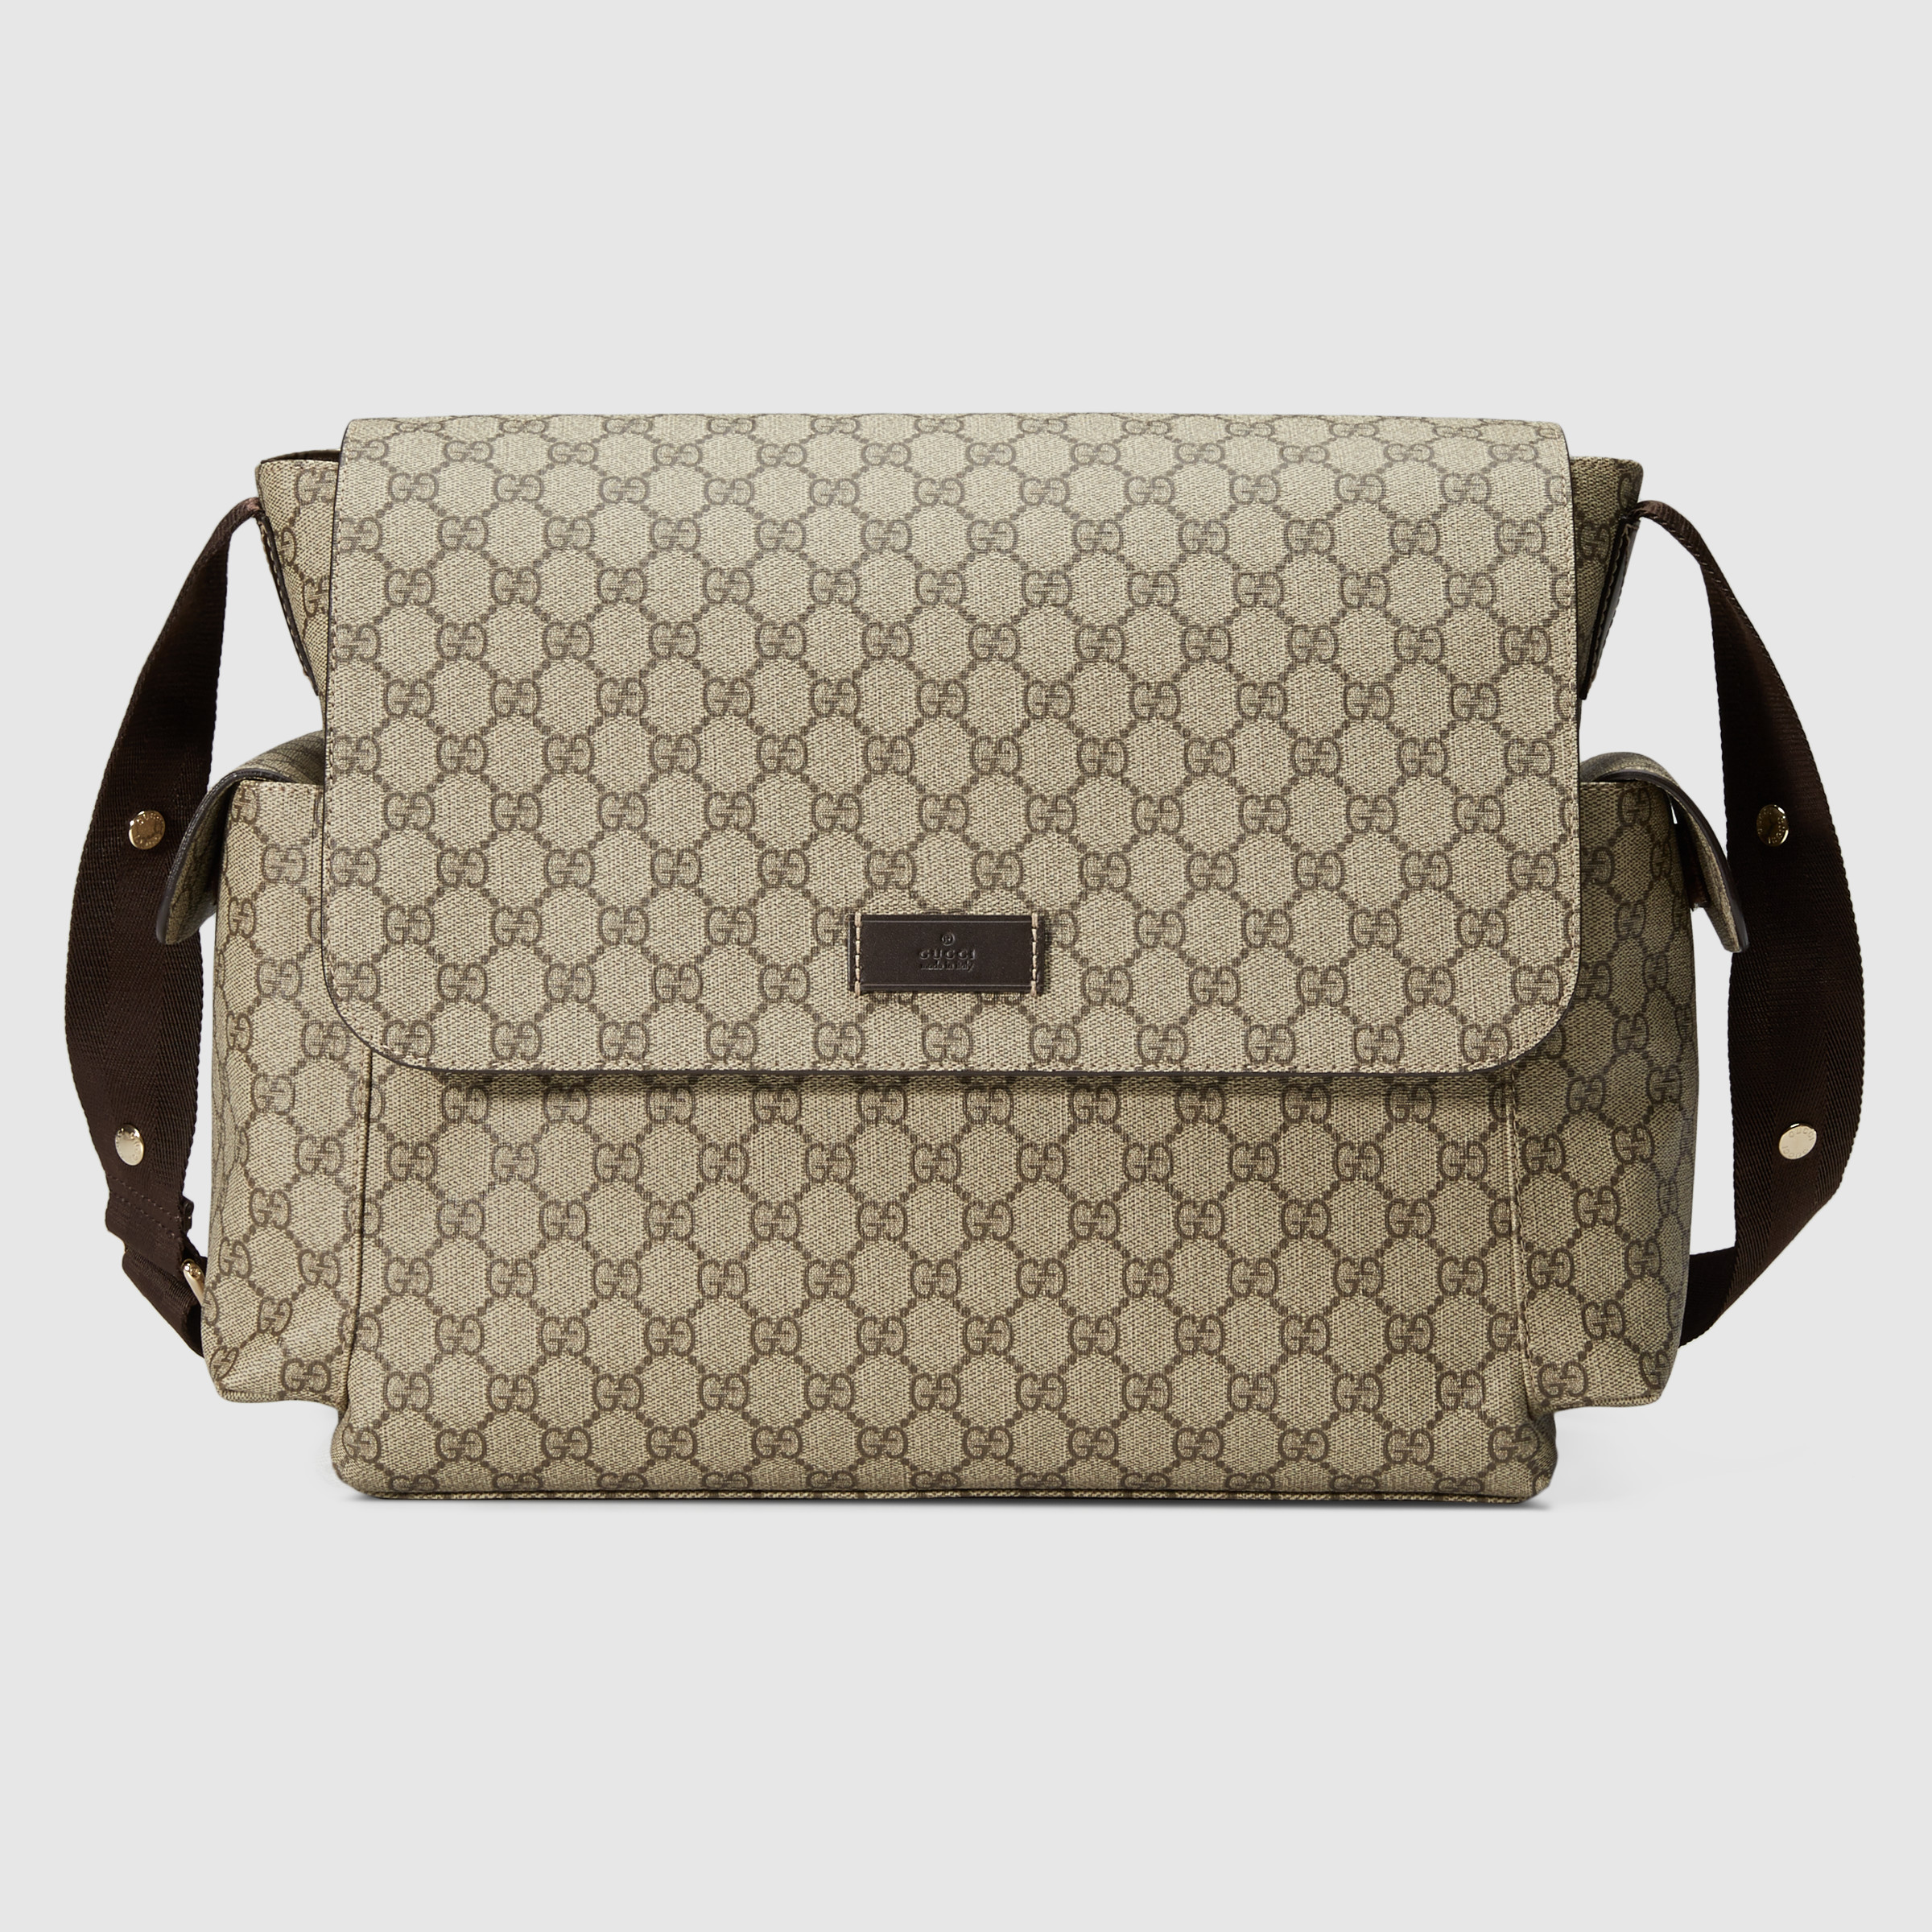 Gucci GG Supreme Baby Changing Bag 211131 Brown Leather